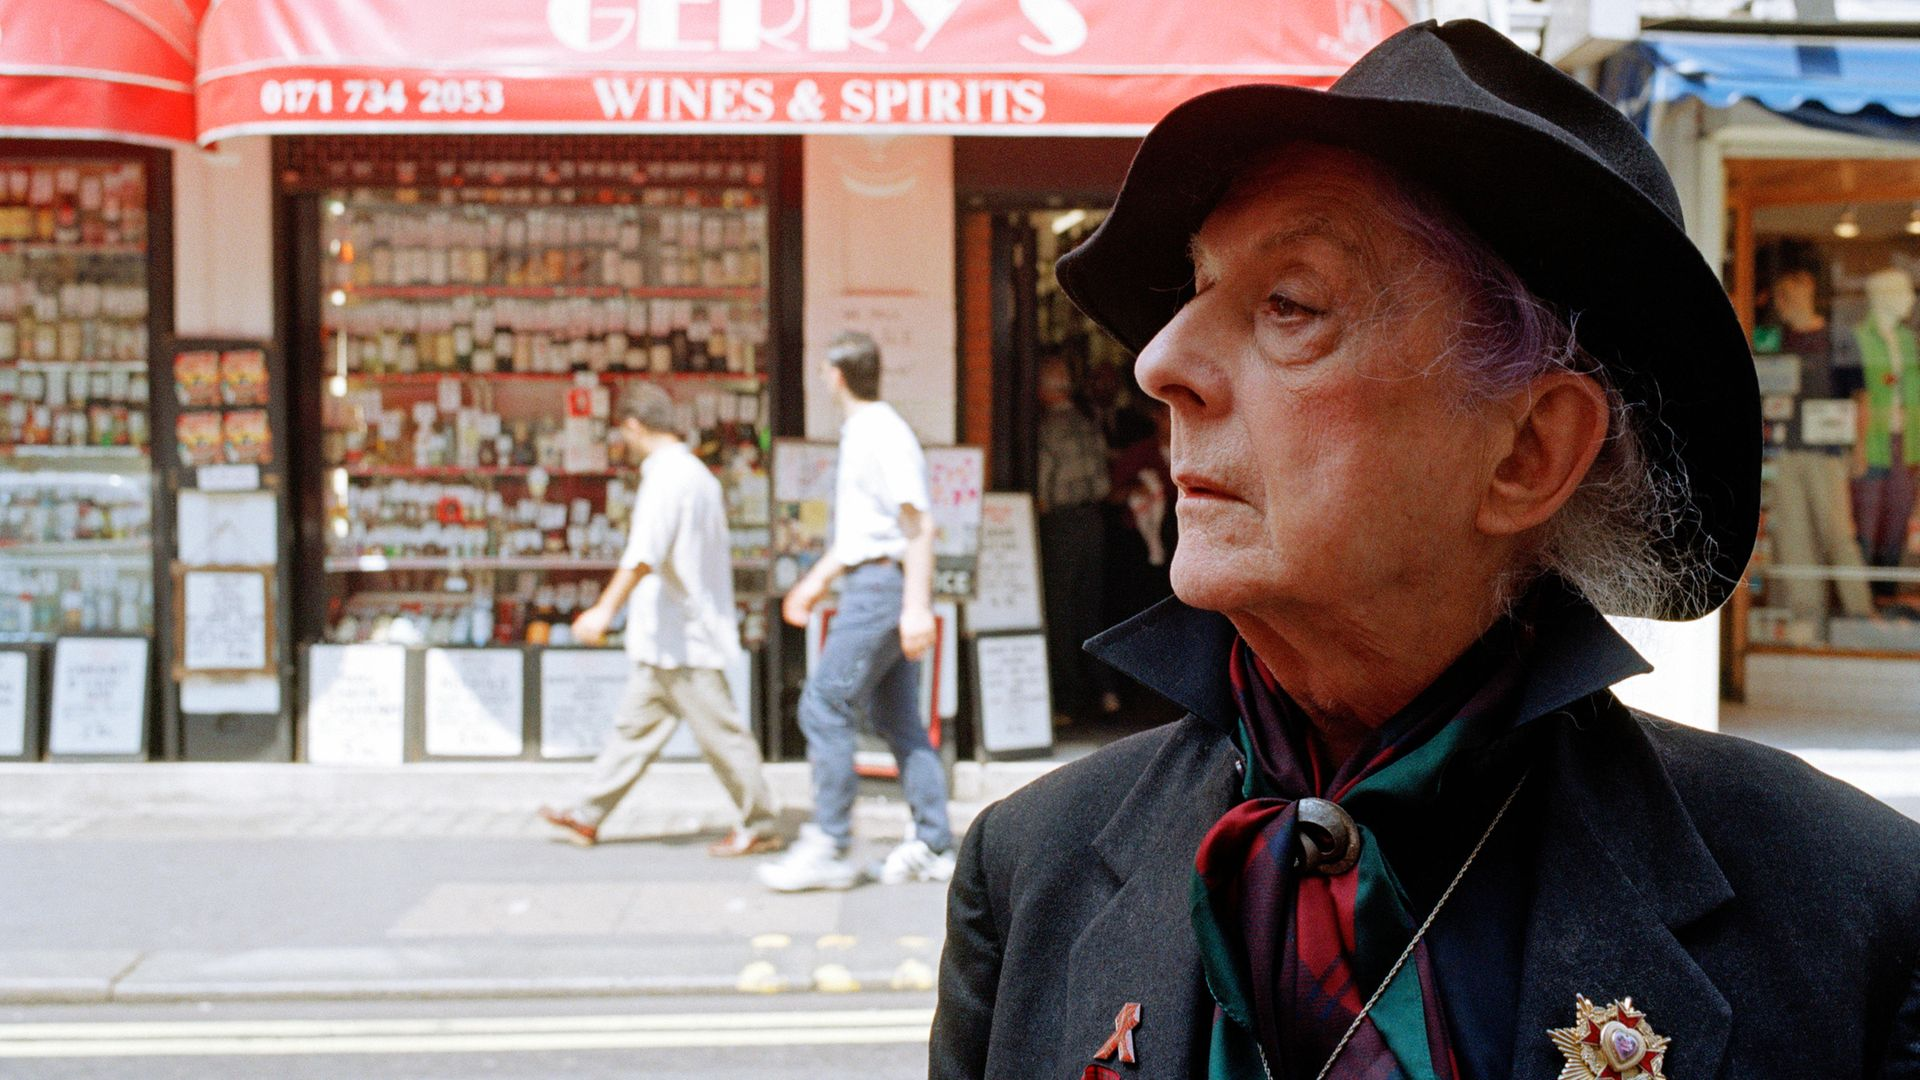 Quentin Crisp on Old Compton Street, London, in 1996 - Credit: Getty Images